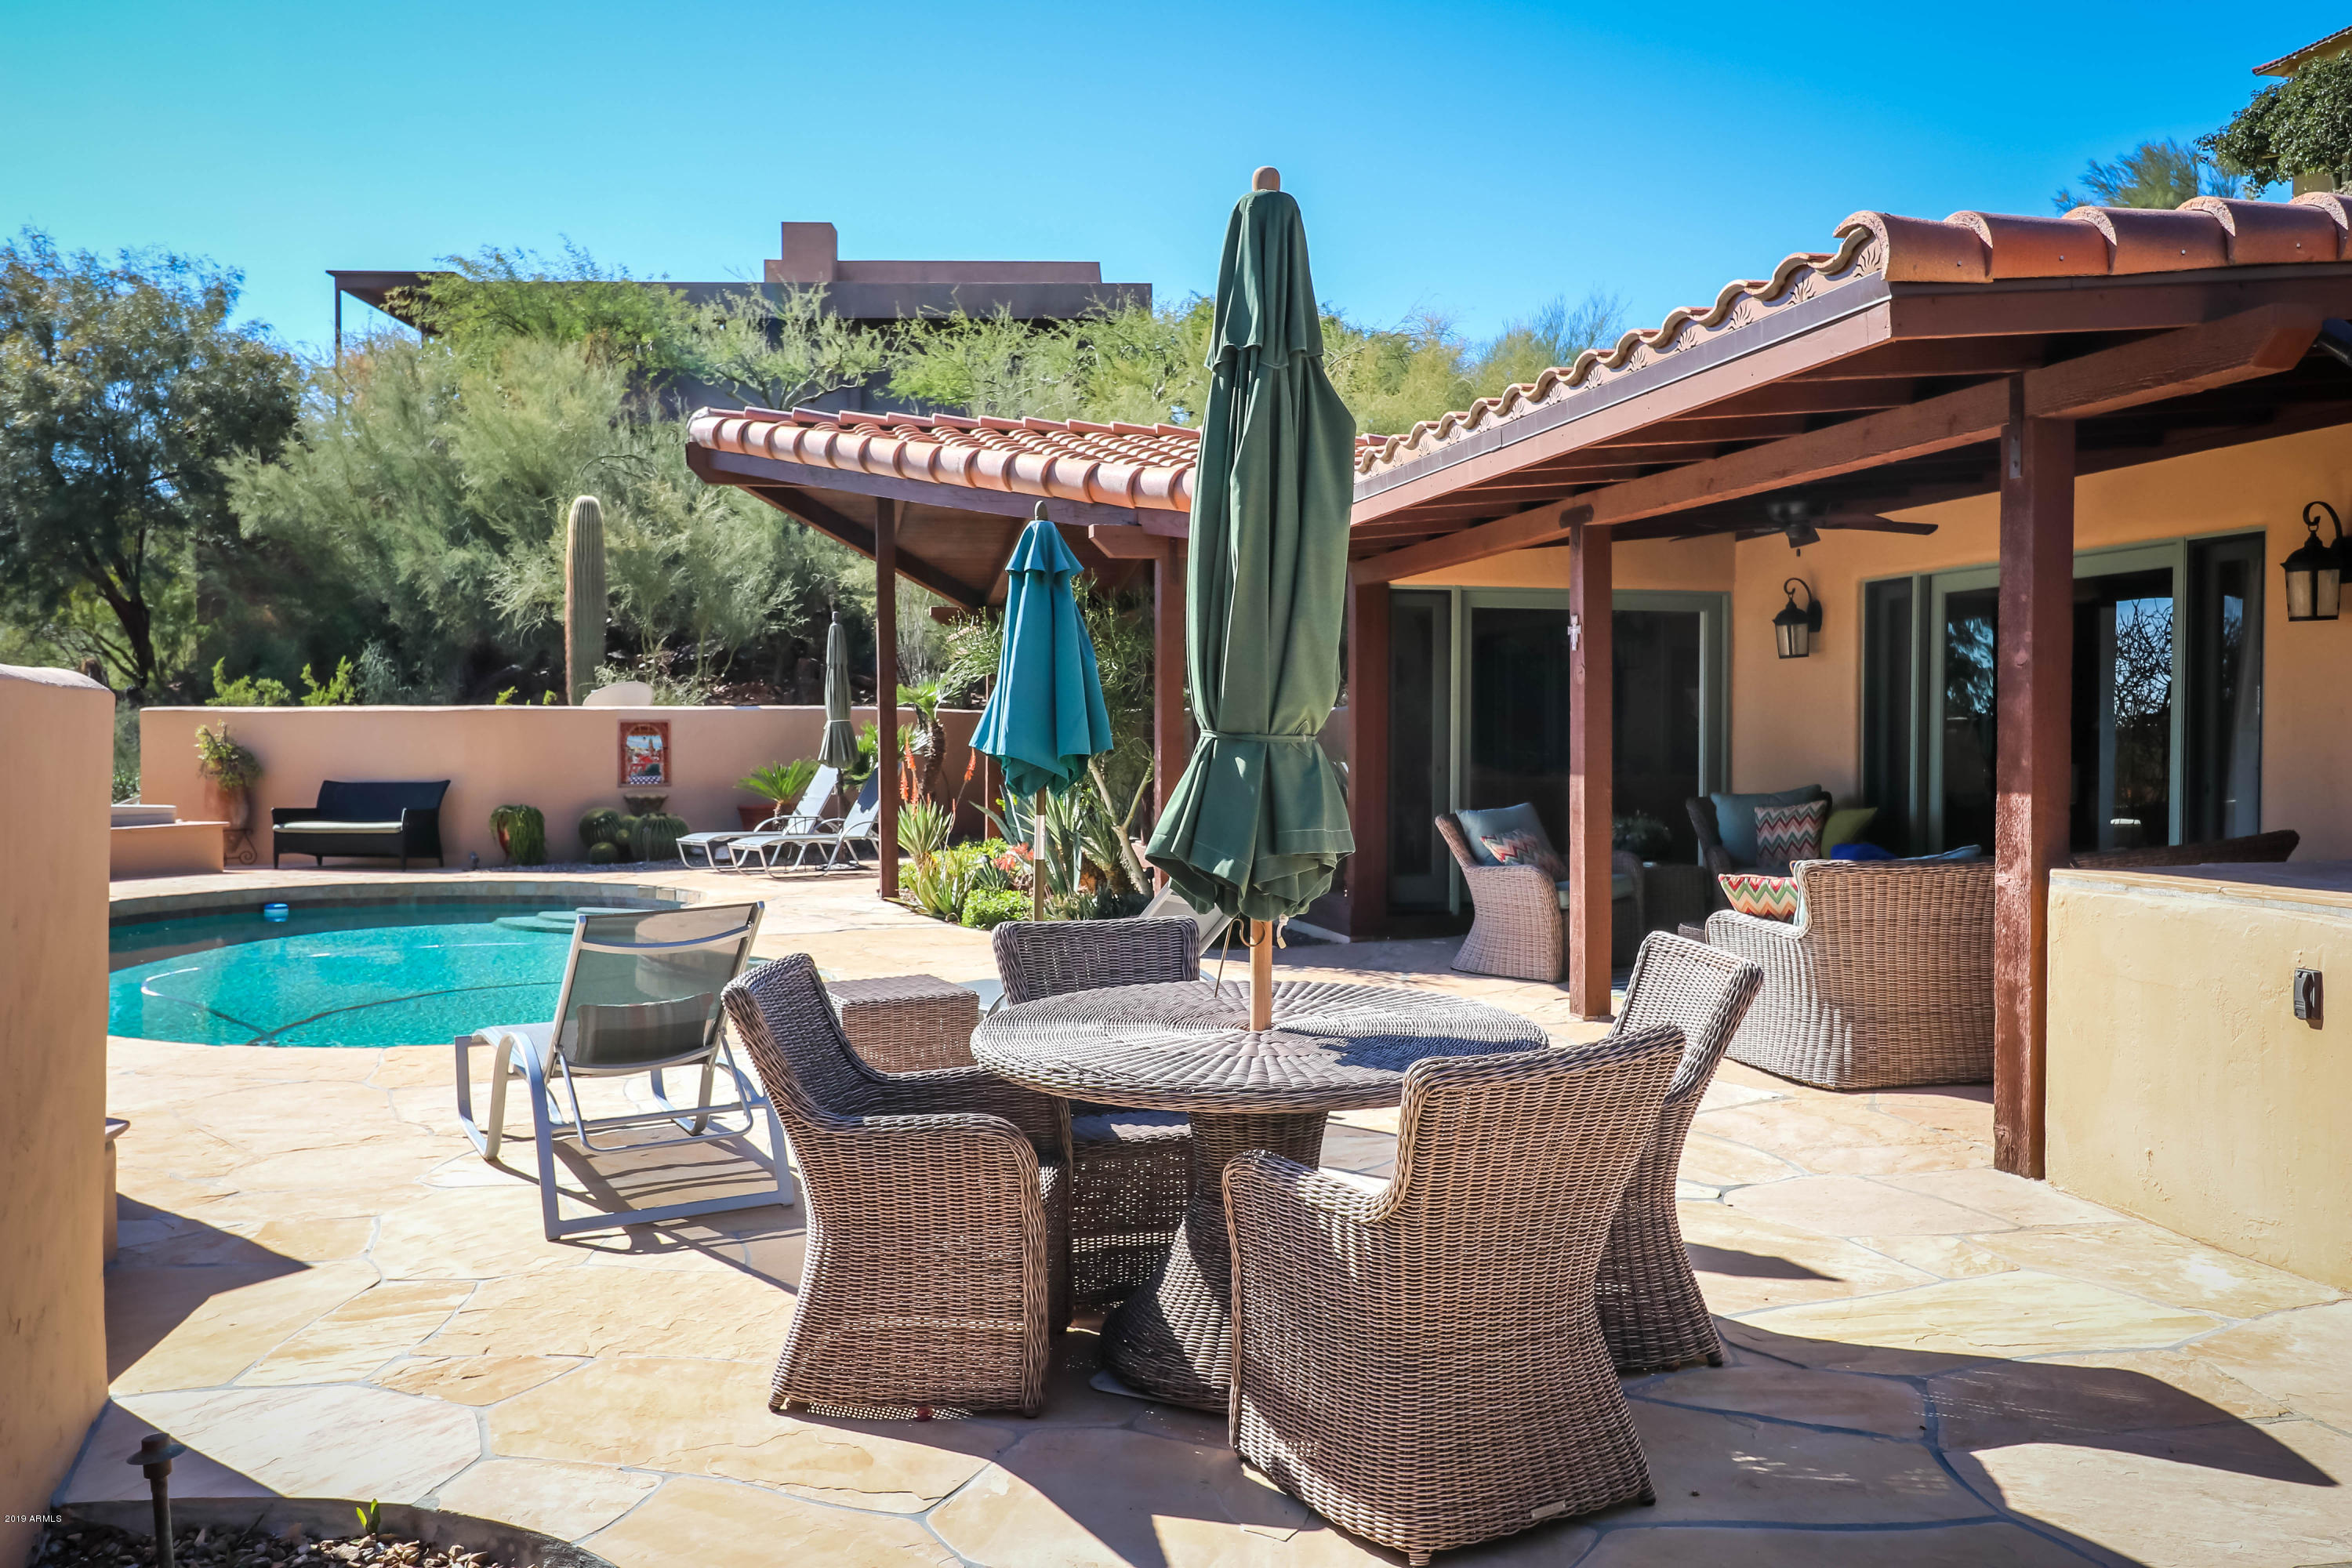 MLS 5968426 7539 N Clearwater Parkway, Paradise Valley, AZ 85253 Paradise Valley AZ Gated